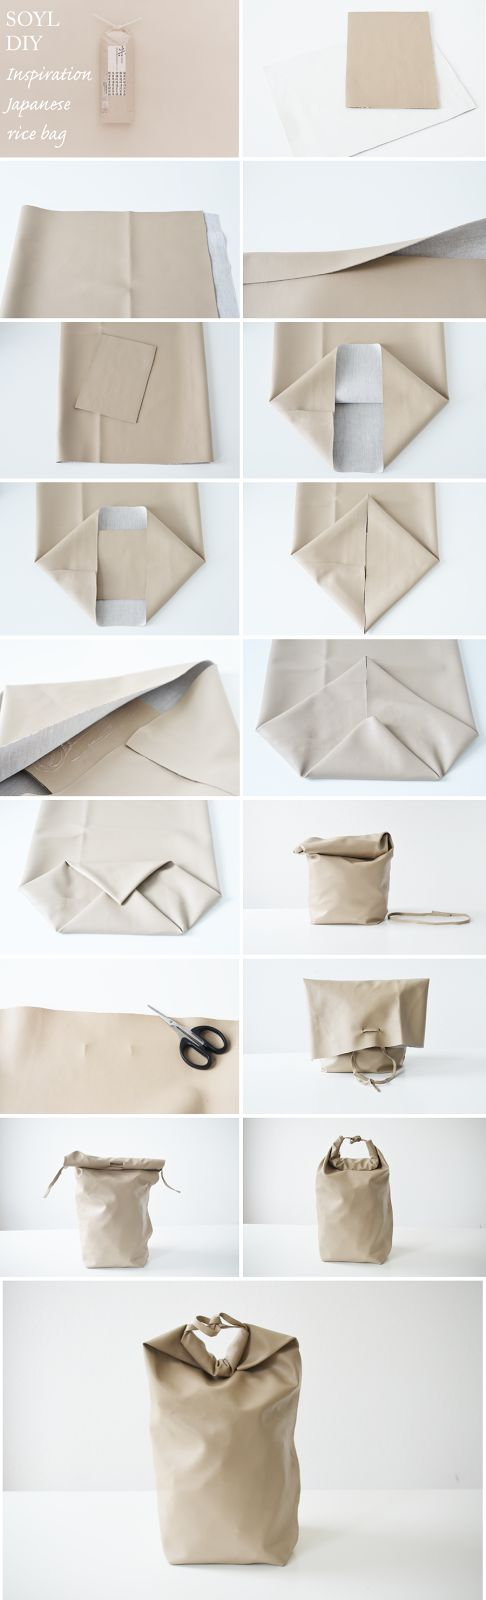 DIY Bag Kenya Hara inspired Japanese rice packaging //Manbo